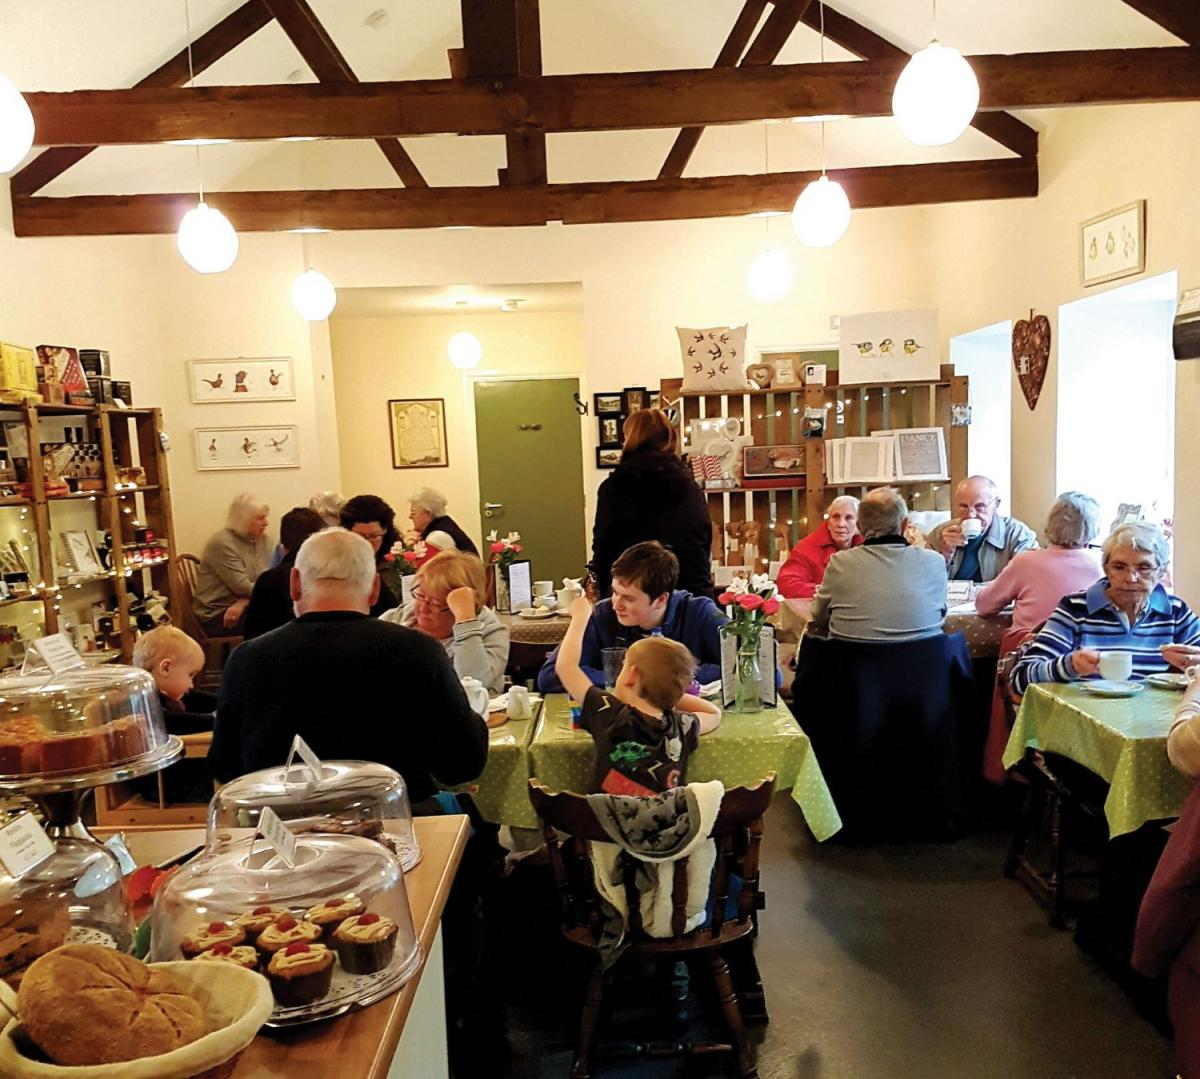 Images from The Old Stables Tea Room